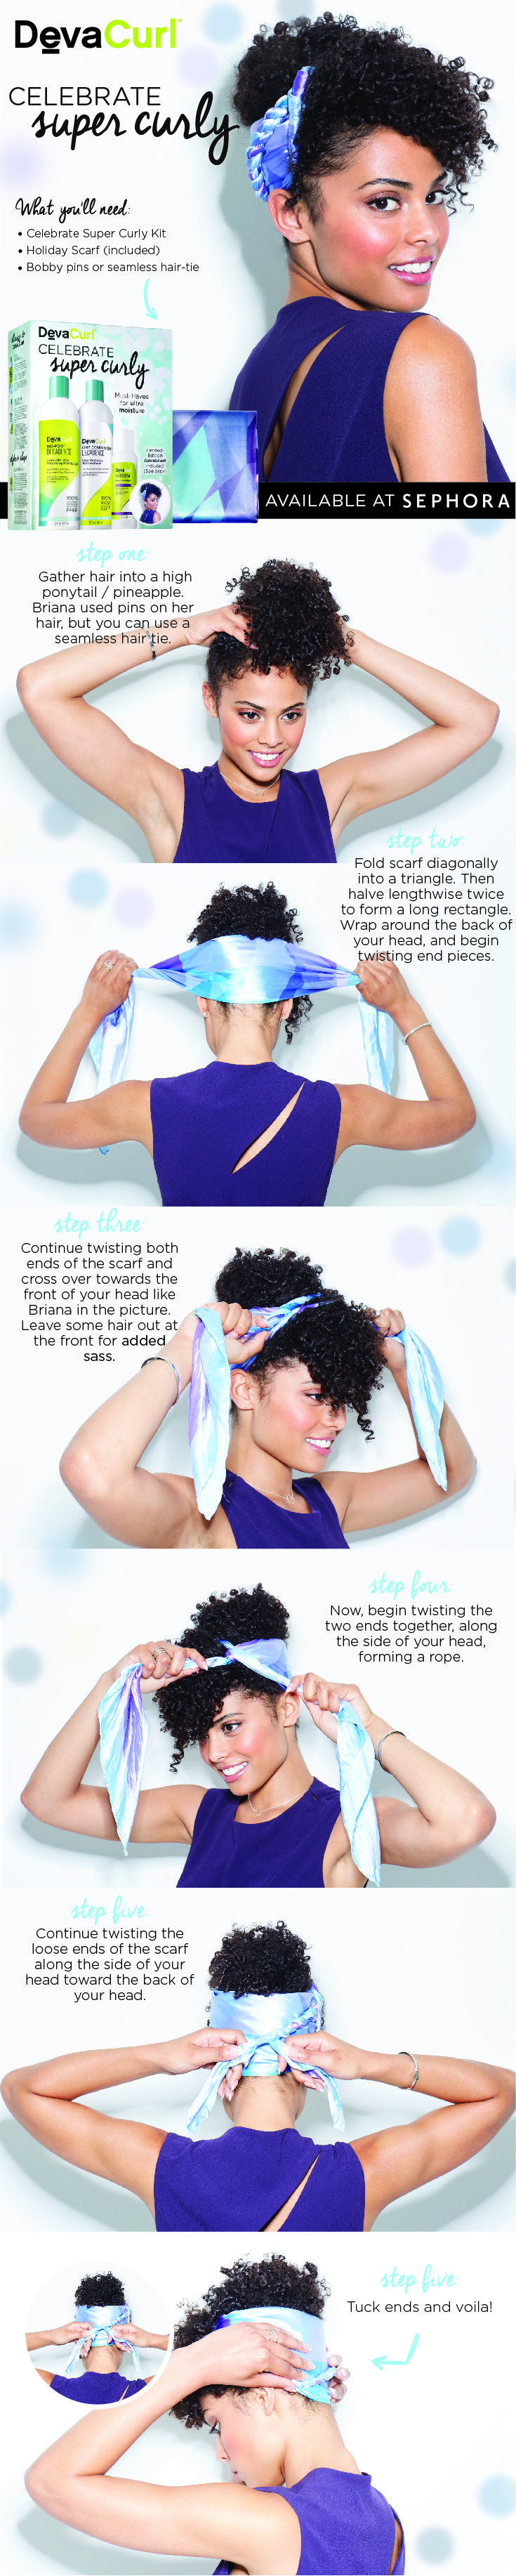 Play up your corkscrews in five easy steps with DevaCurl's Celebrate Supe...